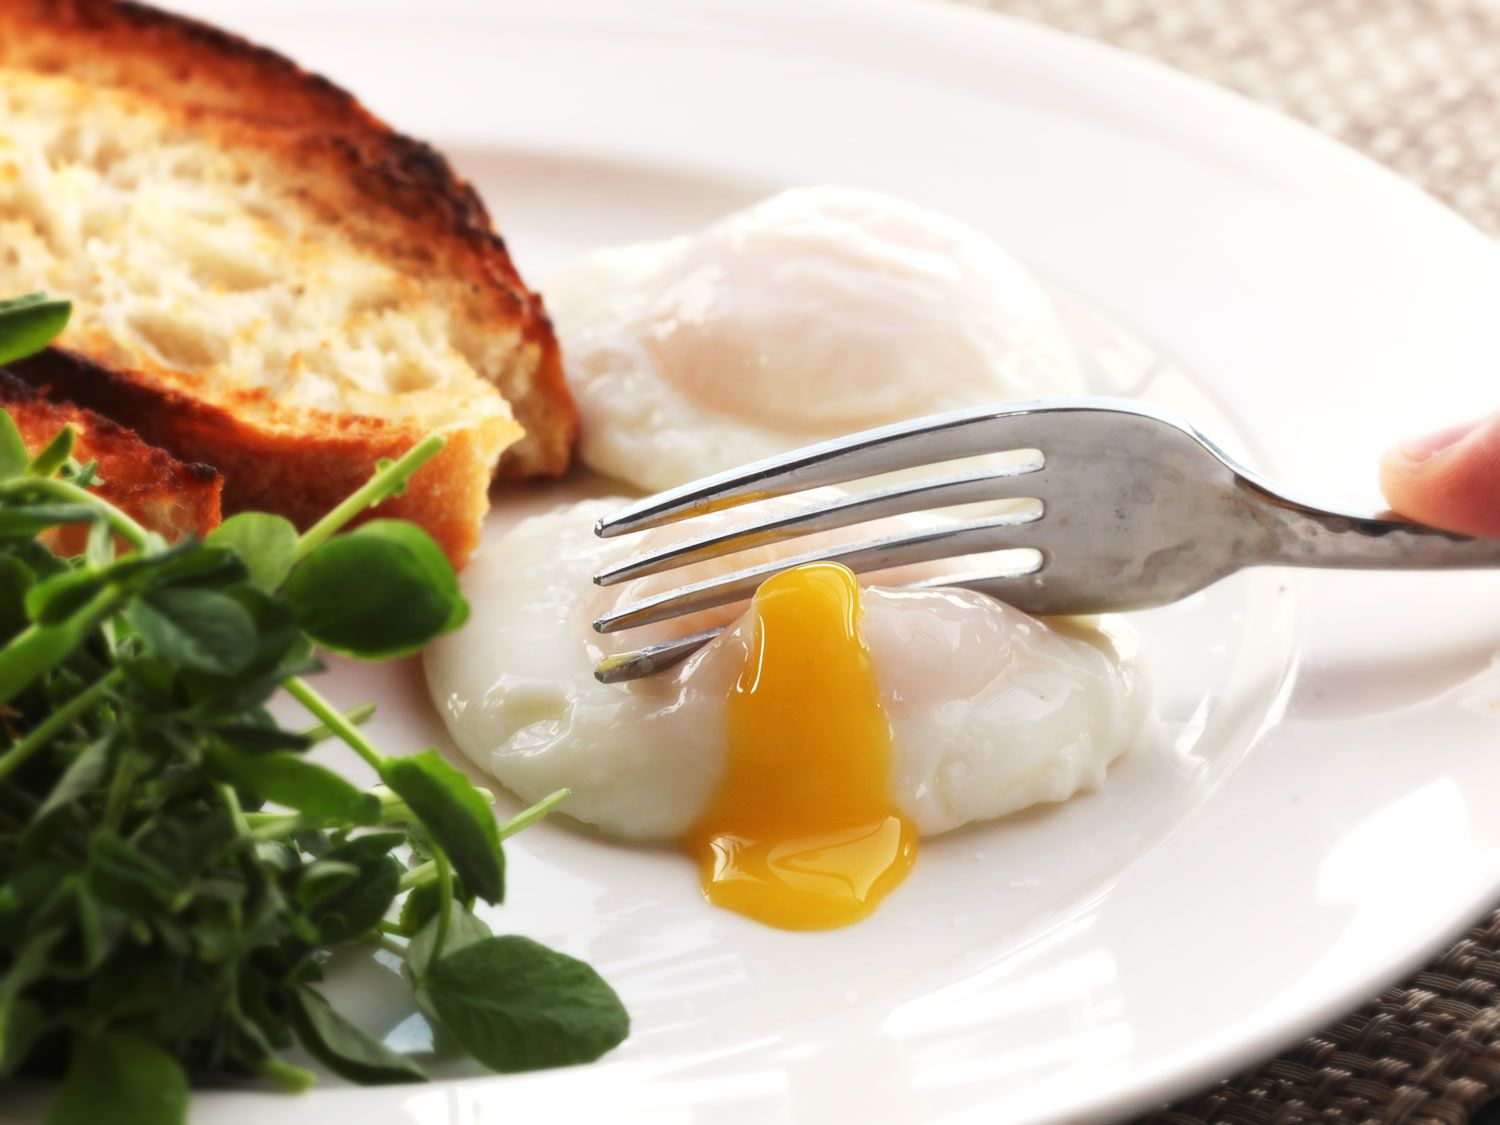 How to Poach Eggs for a Party | The Food Lab